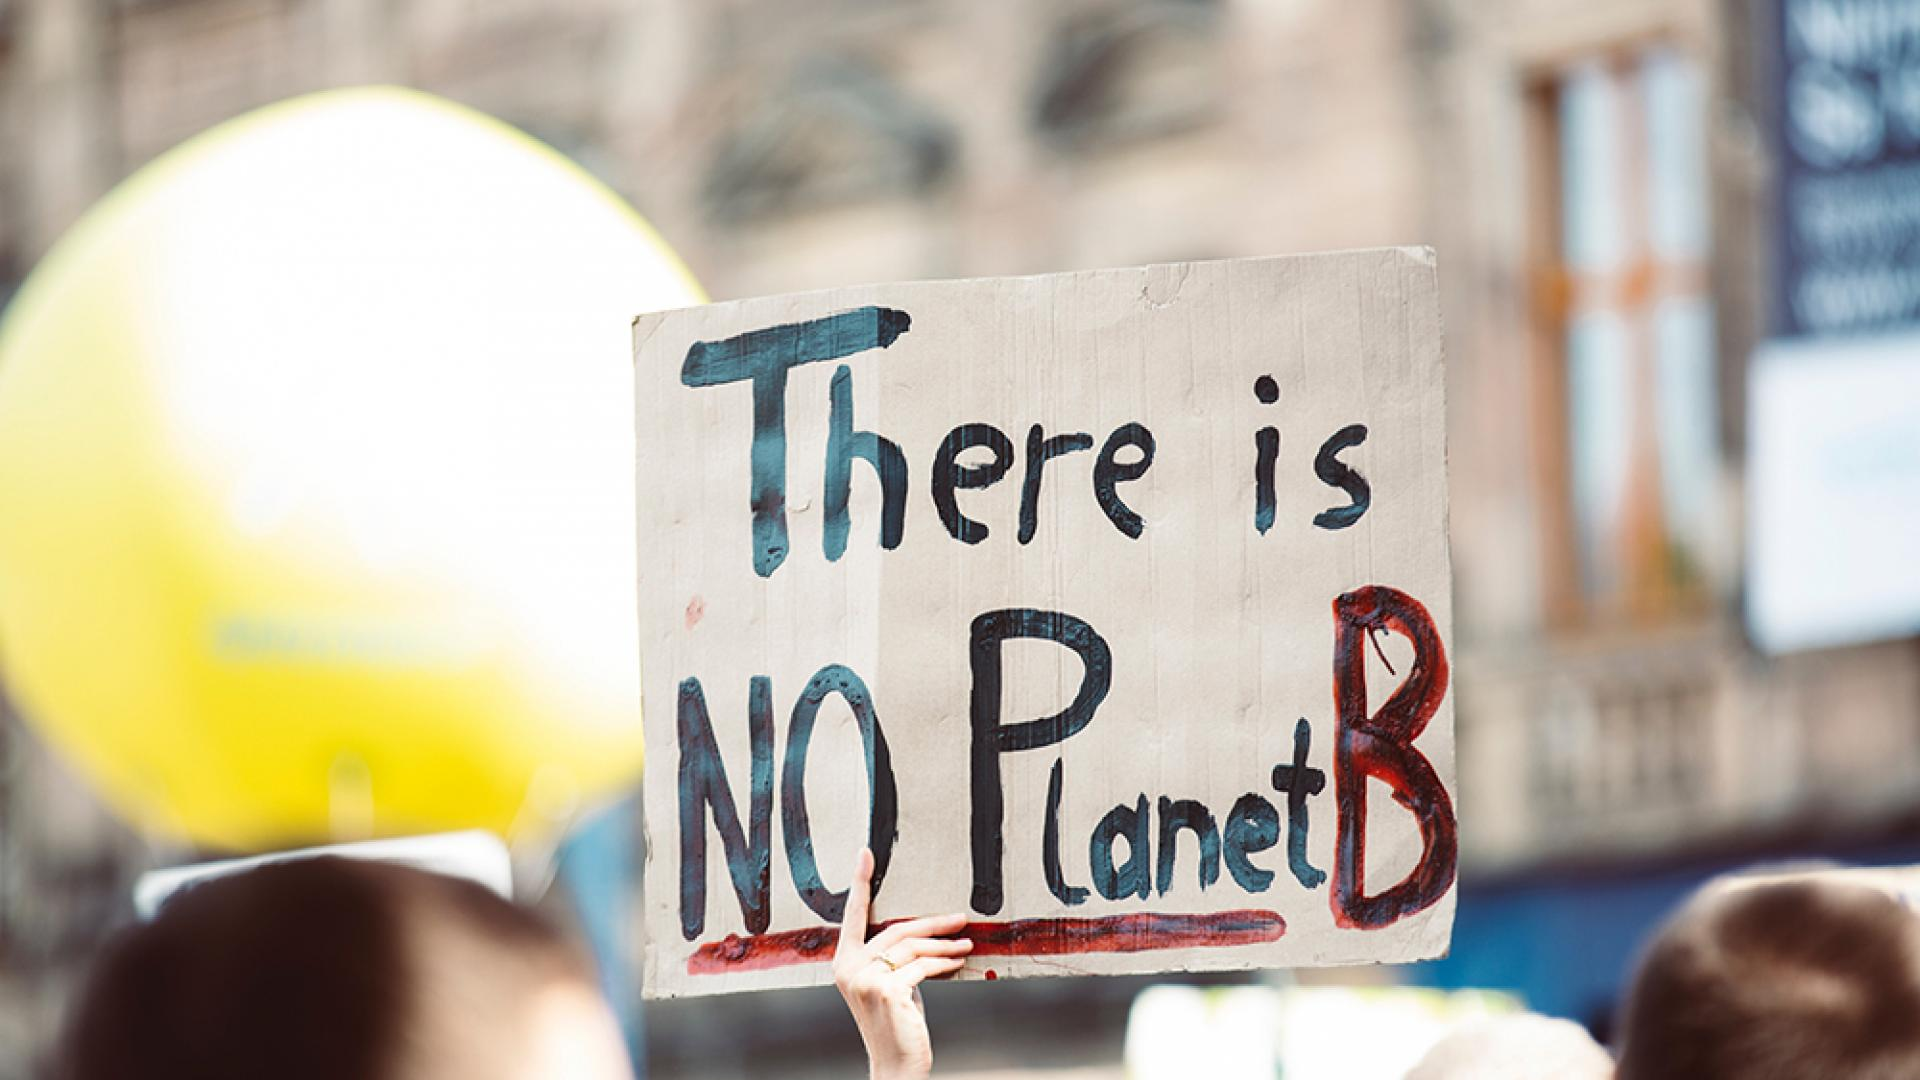 A protester holding a sign that says there is no planet B